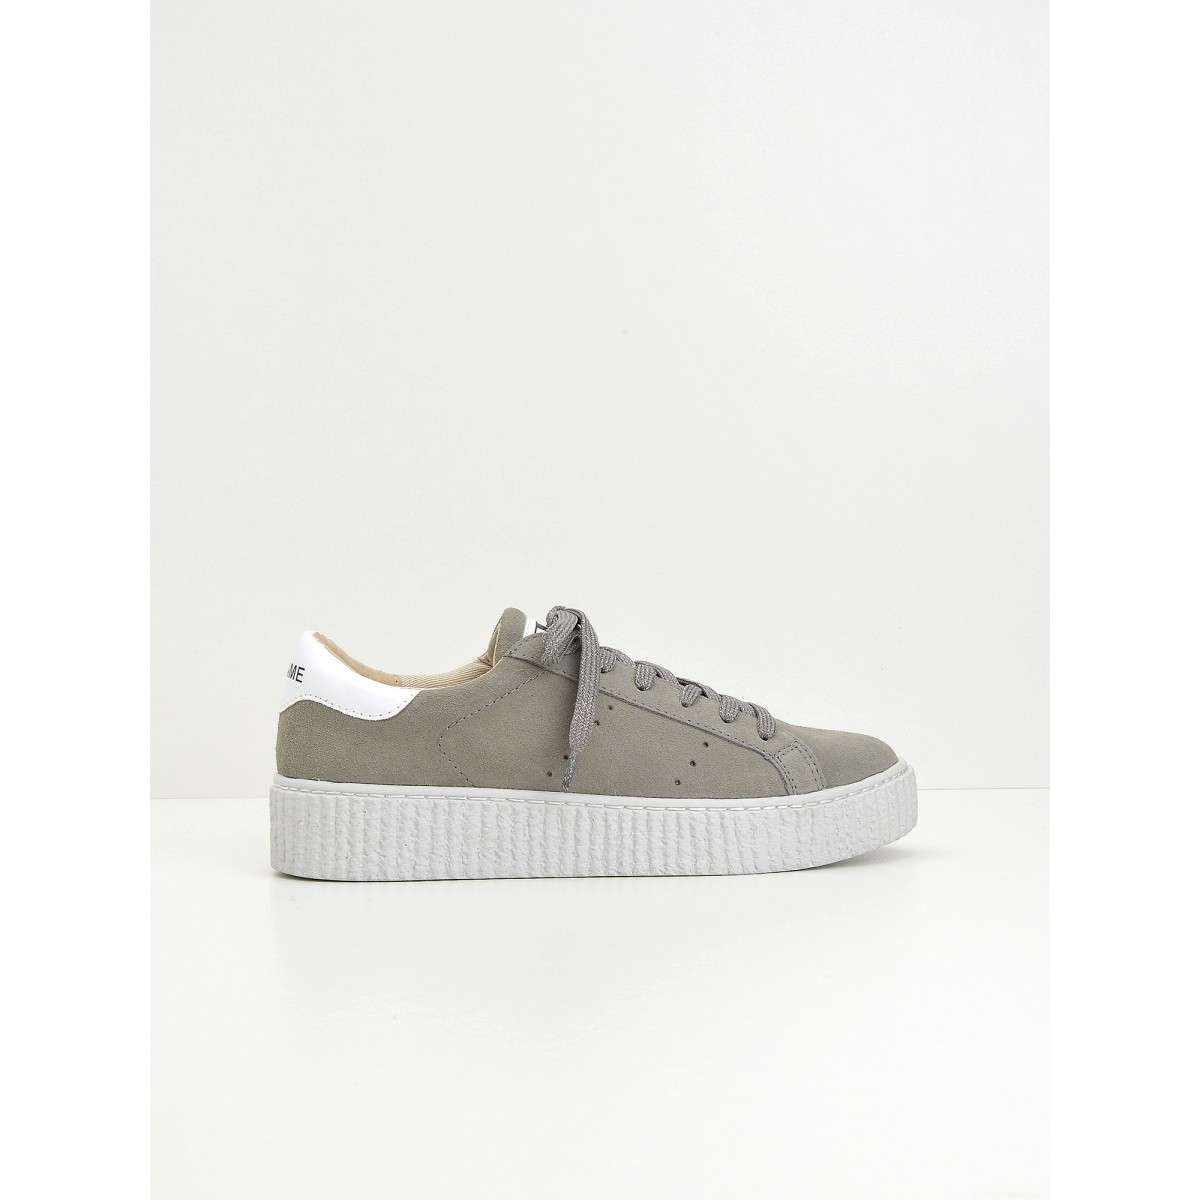 No Name Picadilly Sneaker - Suede - Perle